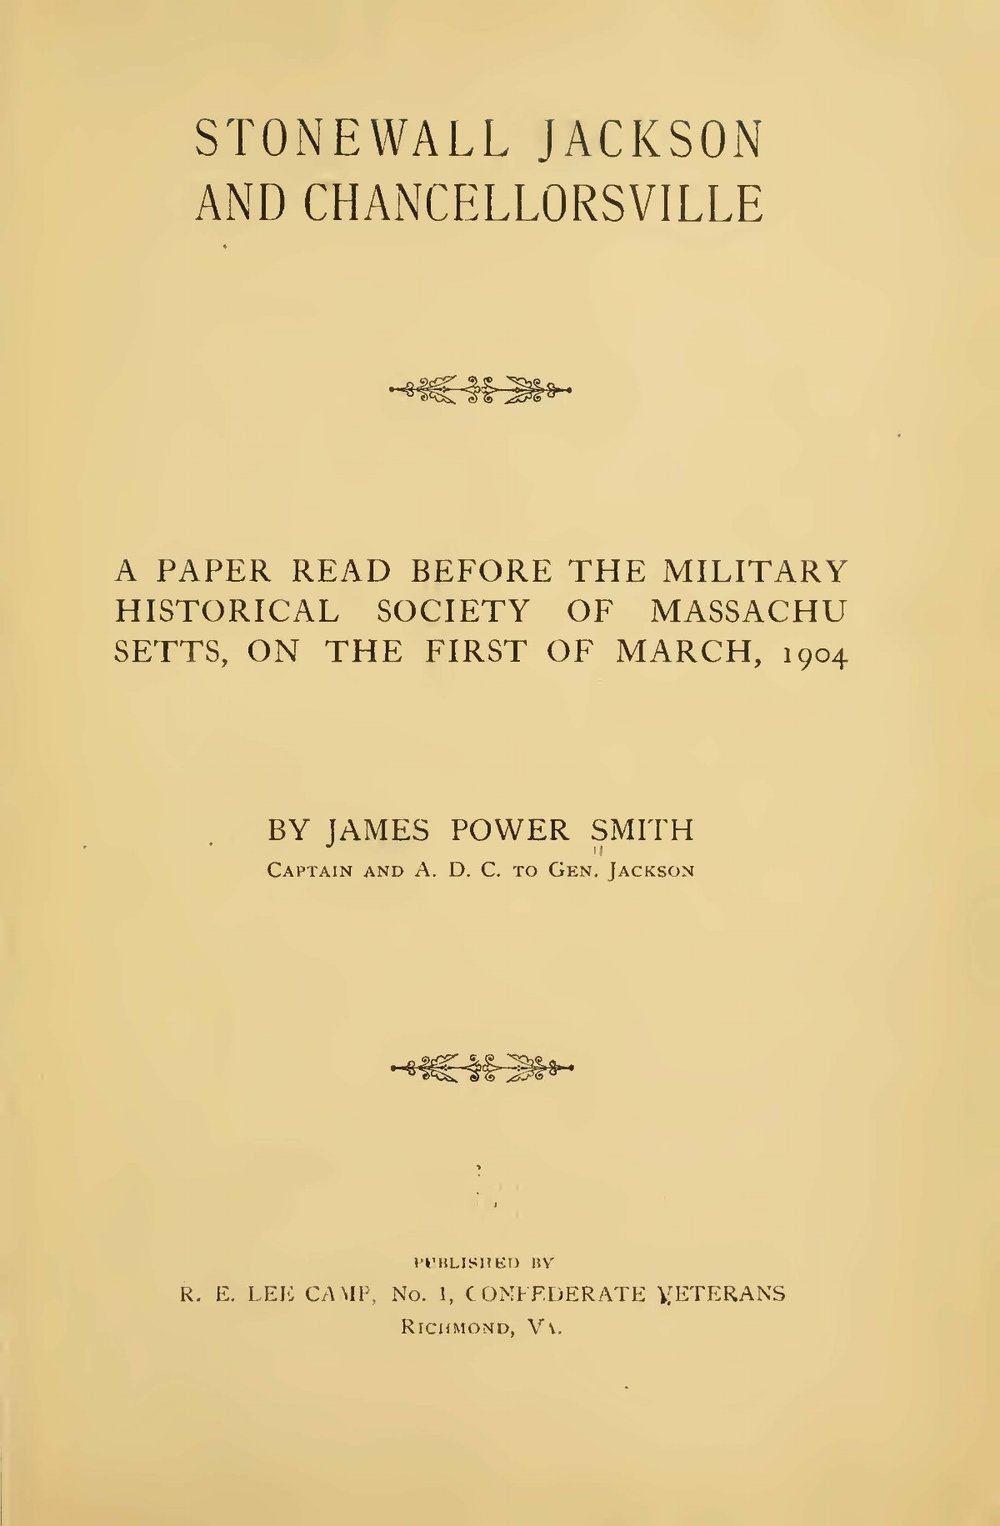 Smith, James Power, Stonewall Jackson and Chancellorsville Title Page.jpg